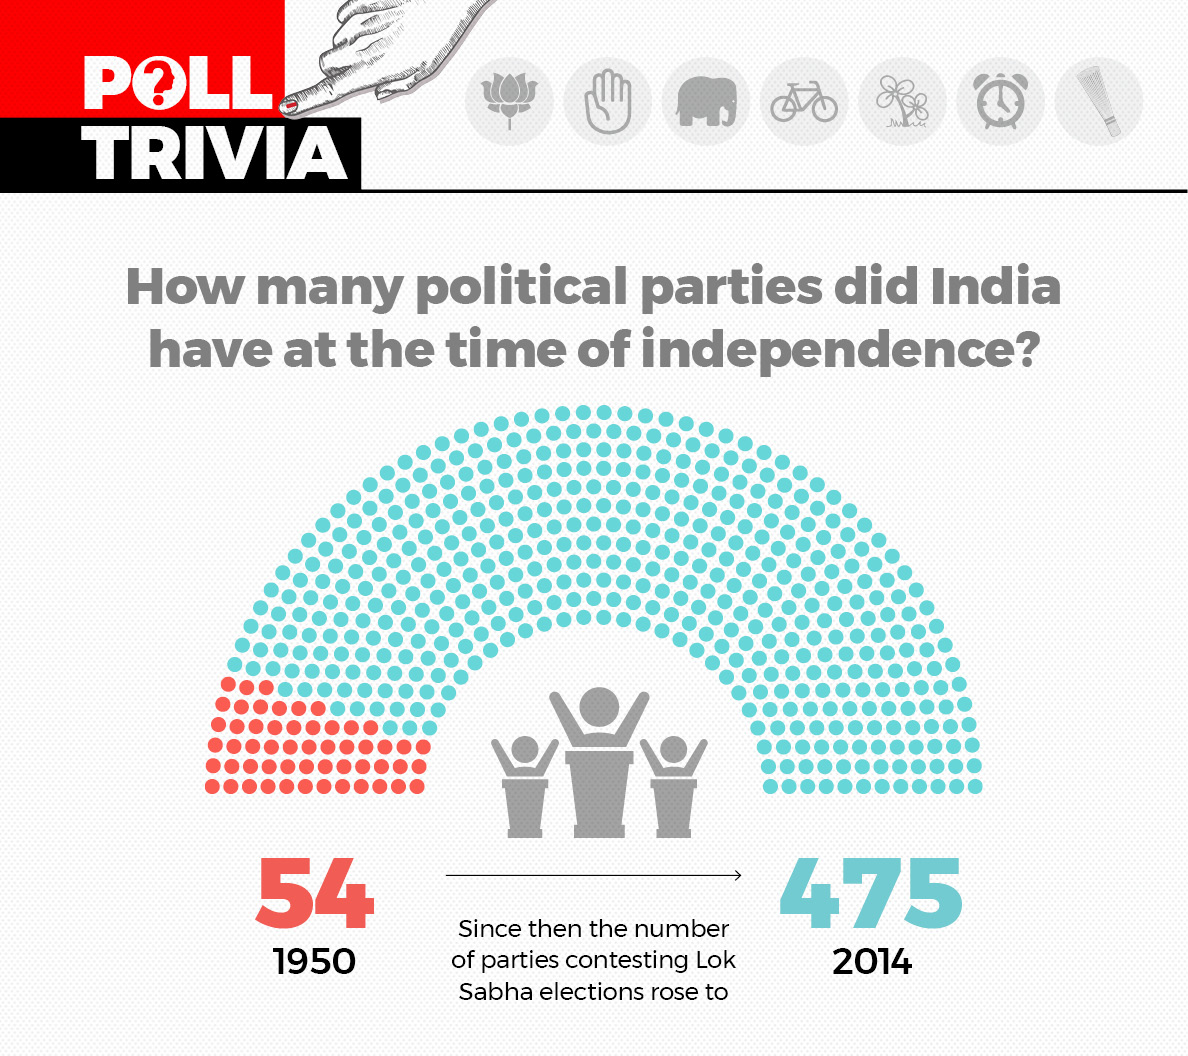 How many political parties did India have at the time of independence?